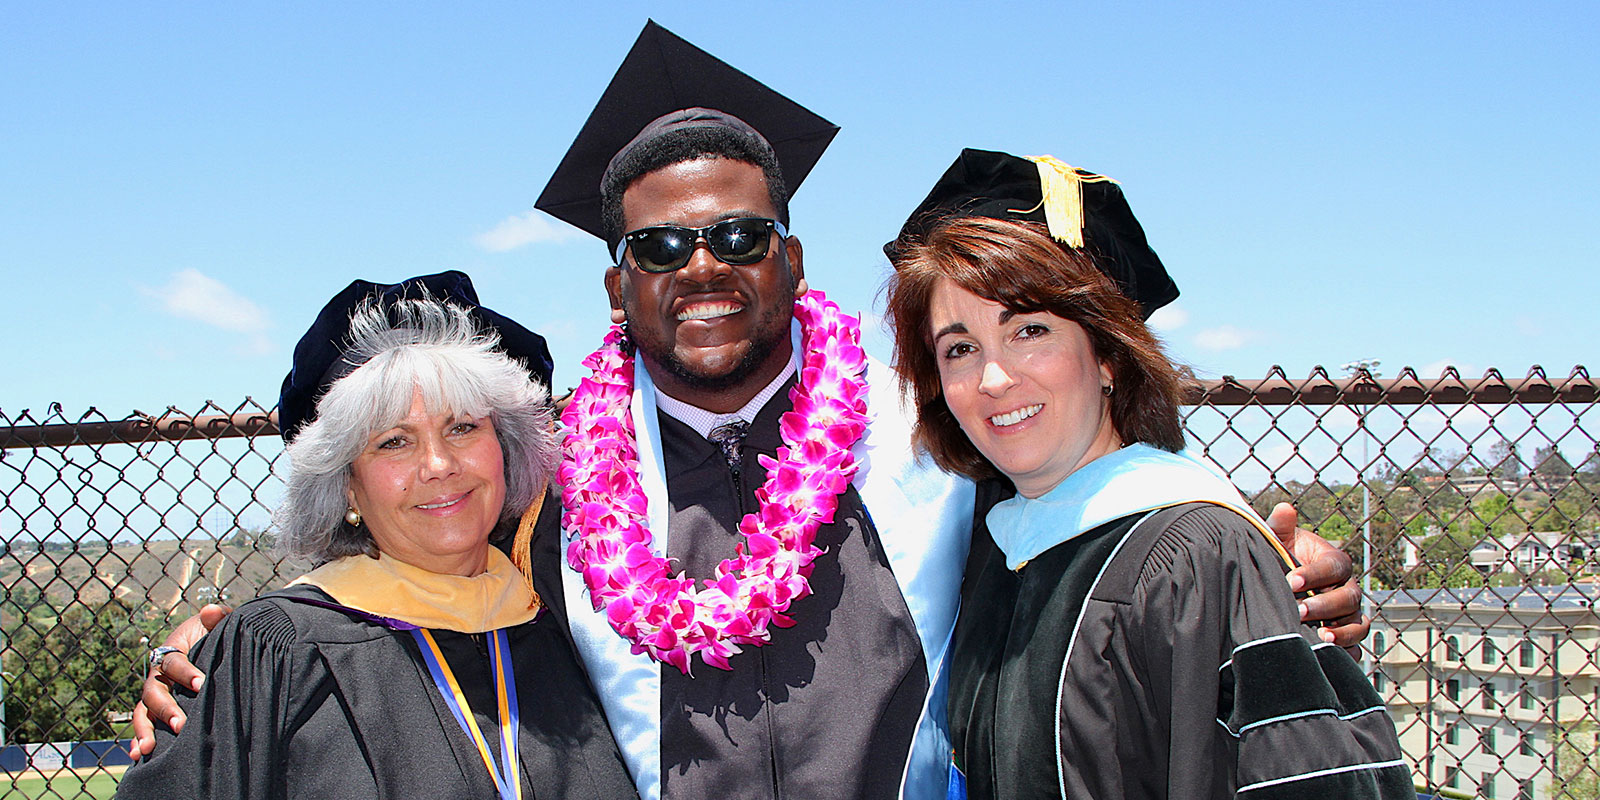 USD's Carmen Vazquez, vice president of student affairs,pictured at left, alongside Williams and Assistant Vice President of Student Life Cynthia Avery